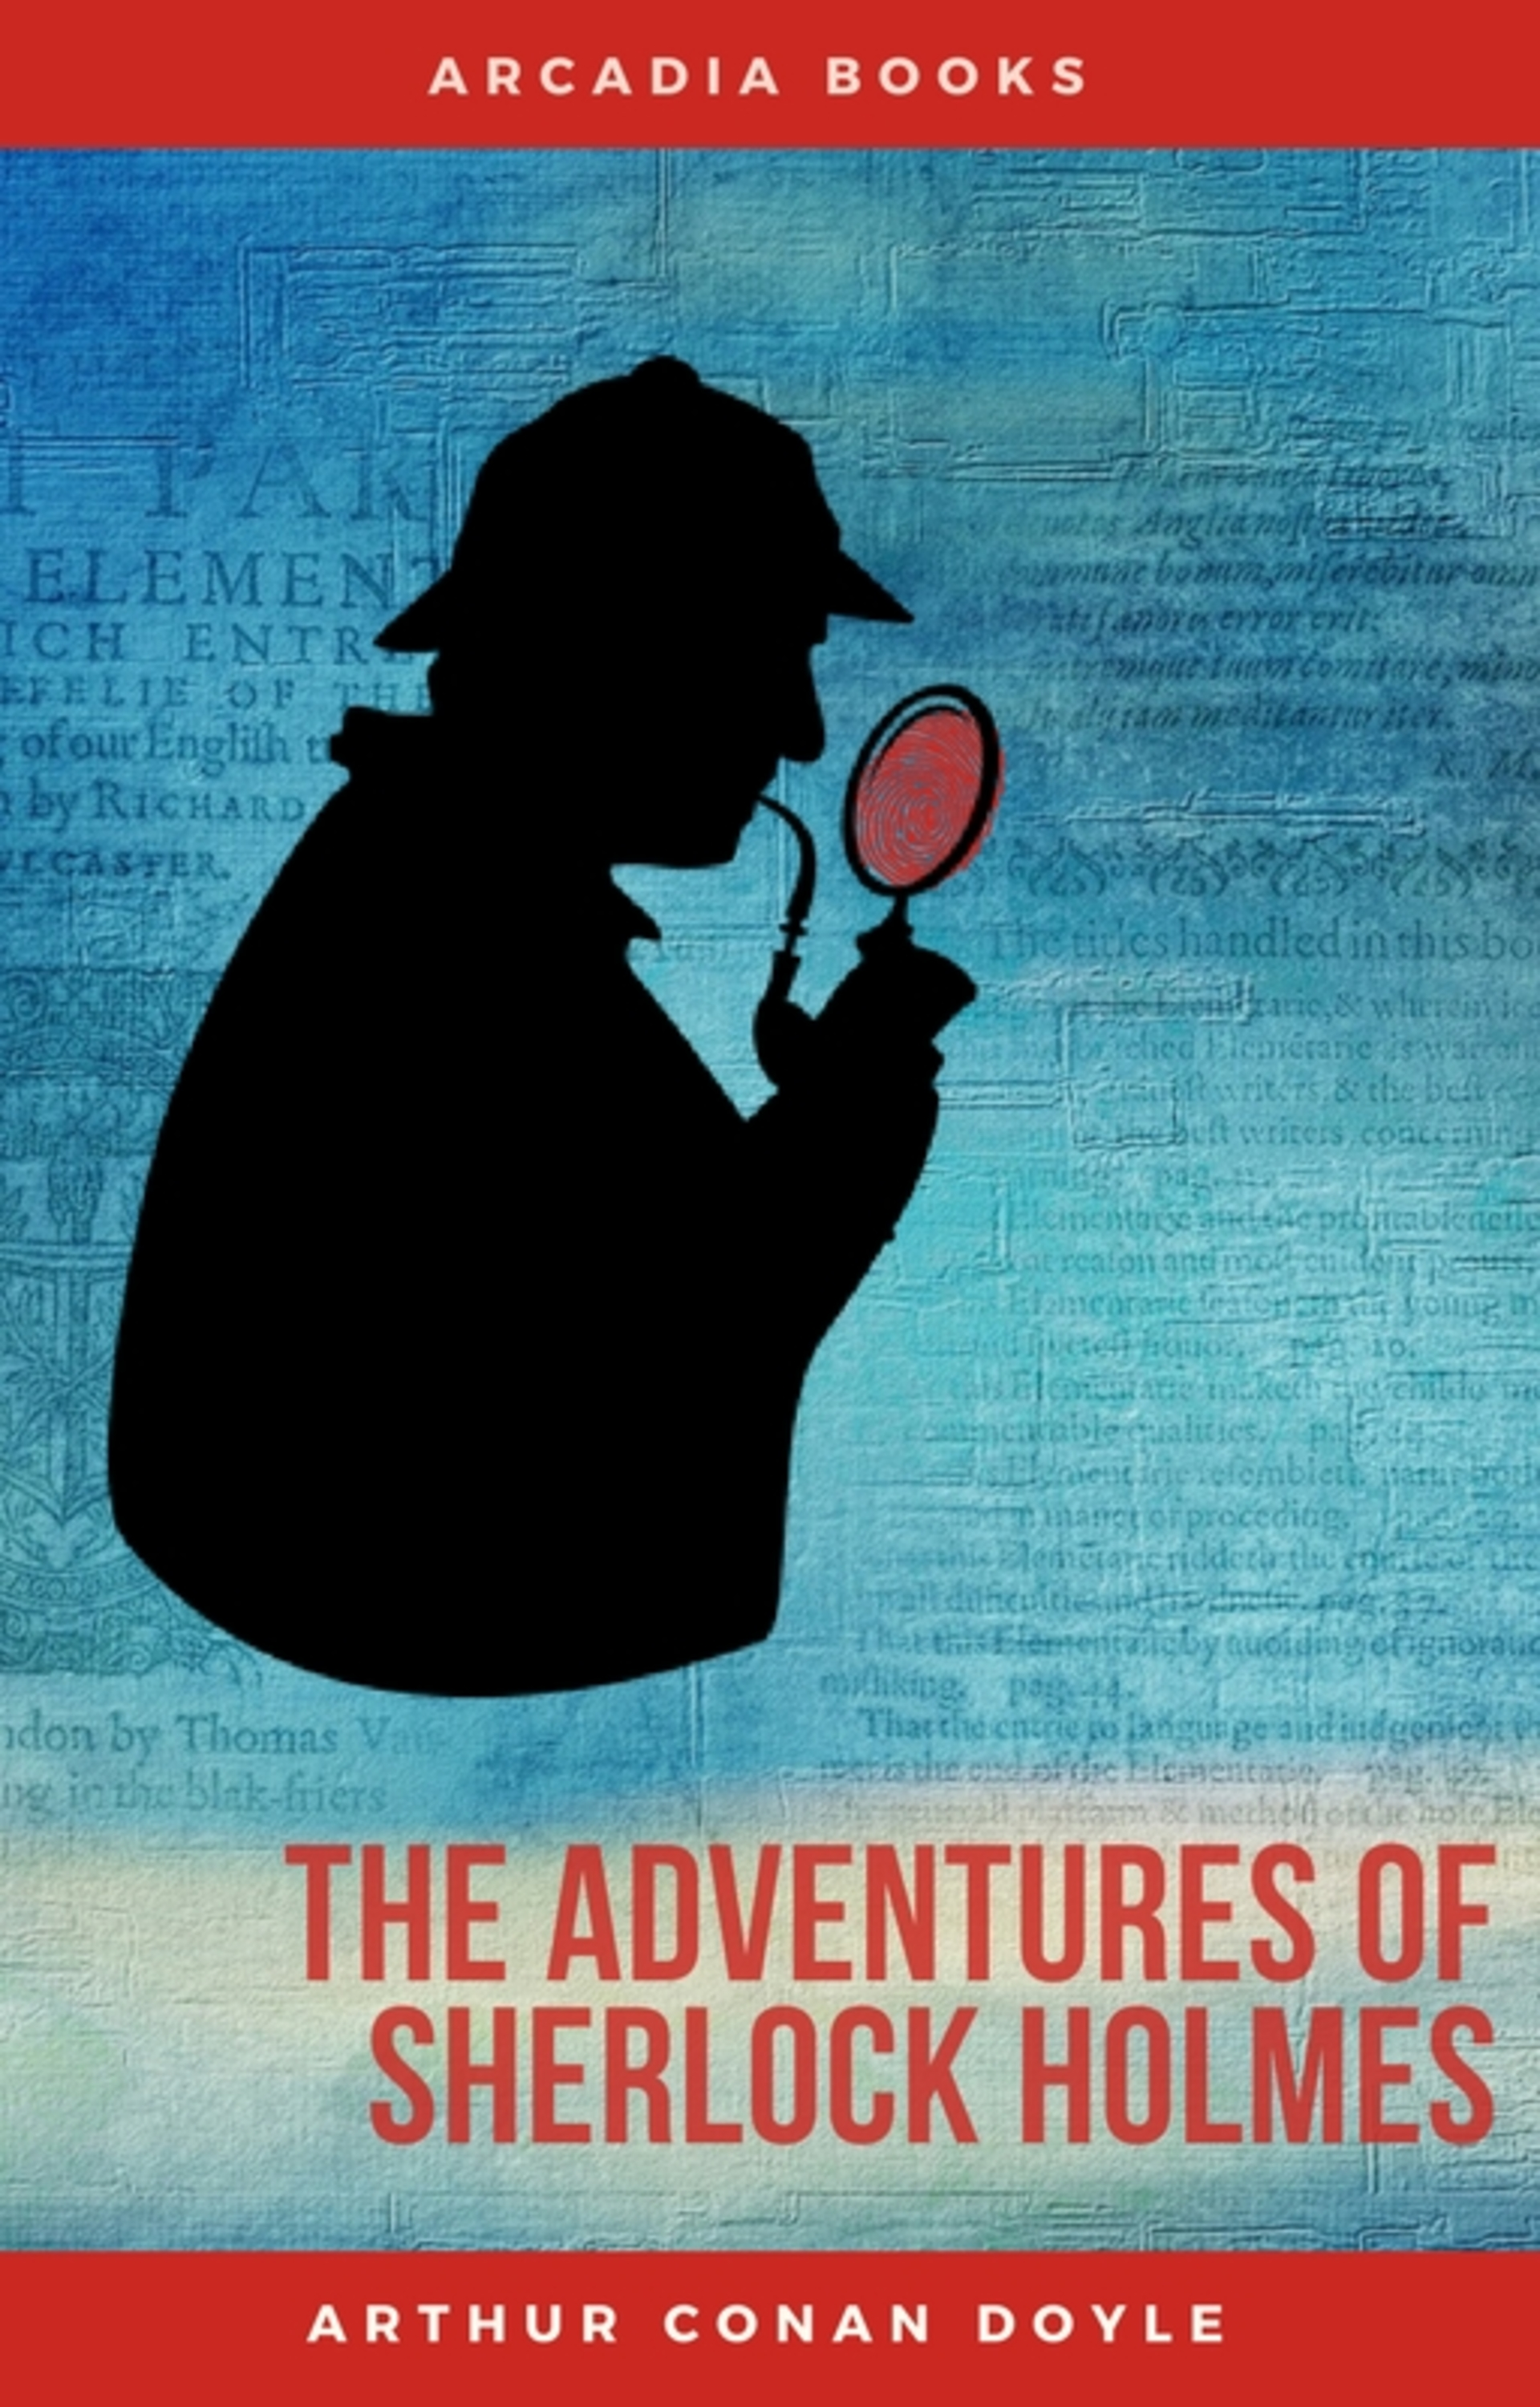 Артур Конан Дойл Arthur Conan Doyle: The Adventures of Sherlock Holmes (The Sherlock Holmes novels and stories #3) конан дойл а рассказы о шерлоке холмсе пестрая лента голубой карбункул the stories about sherlock holmes the speckled band the blue carbuncle уровень 2